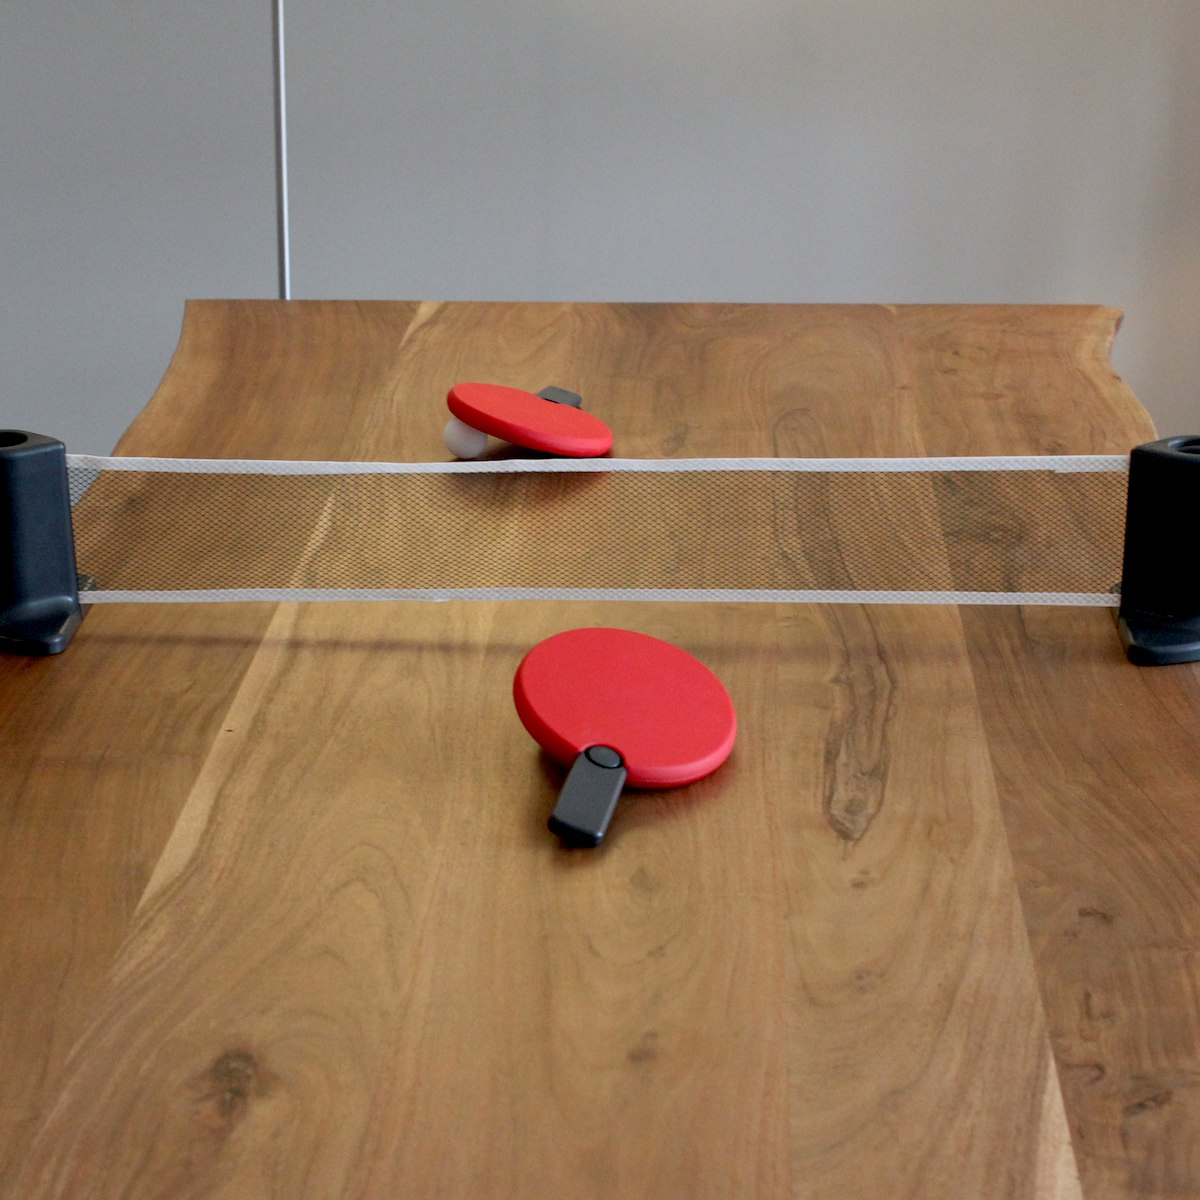 Portable Play Table : This pongo portable set lets you play ping pong on any